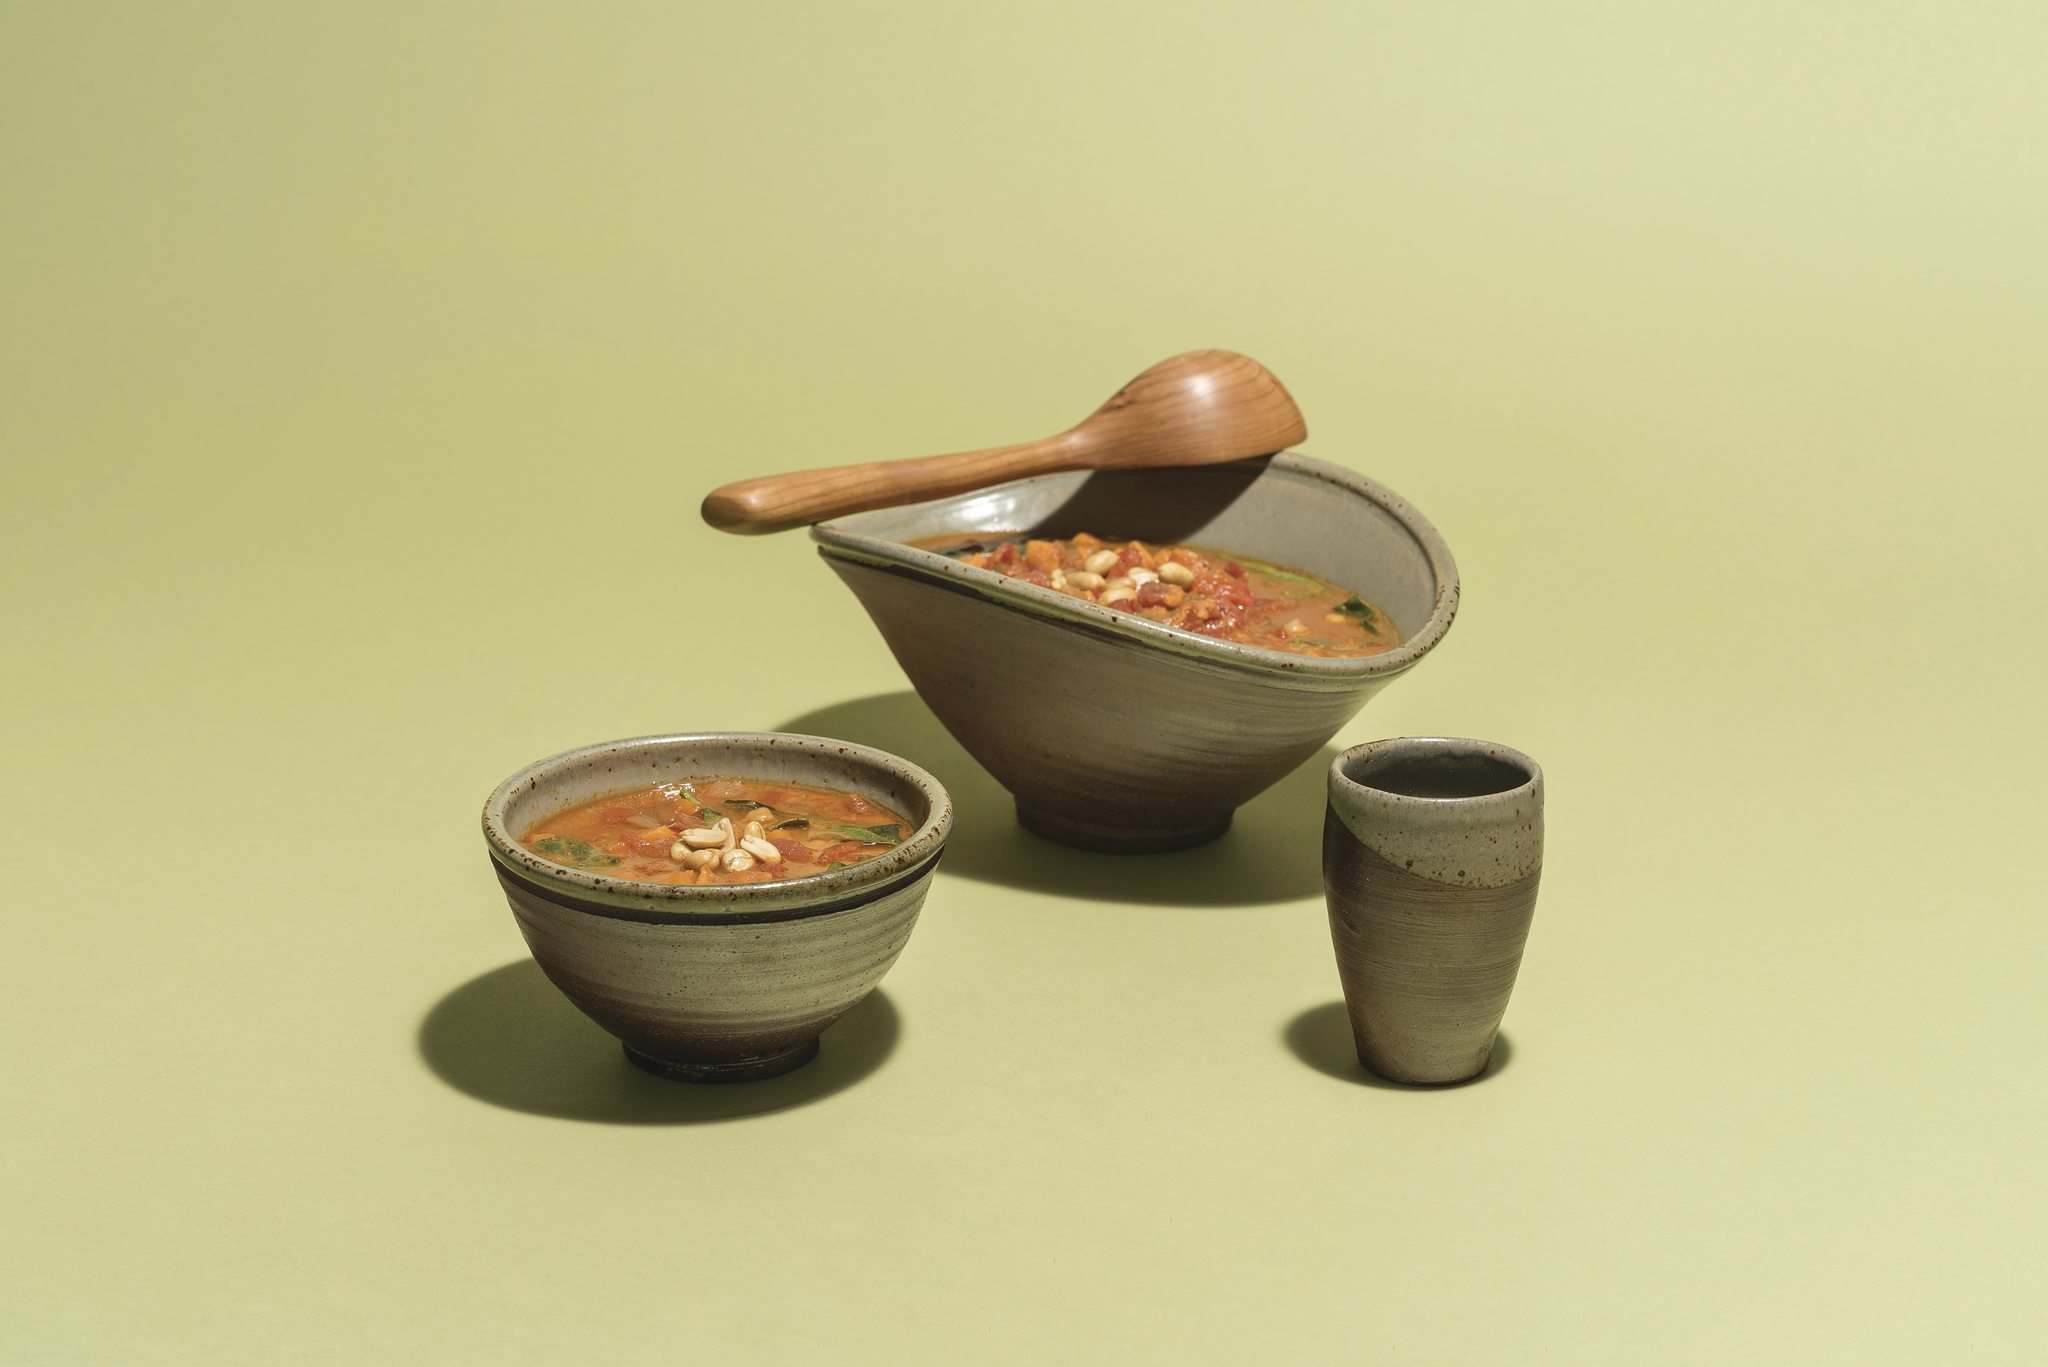 African Peanut Soup, with ceramics by David McMillan. The soup is part of Verde Juice Bar's regular menu rotation and has become a customer favourite. (Lianed Marcoleta photo)